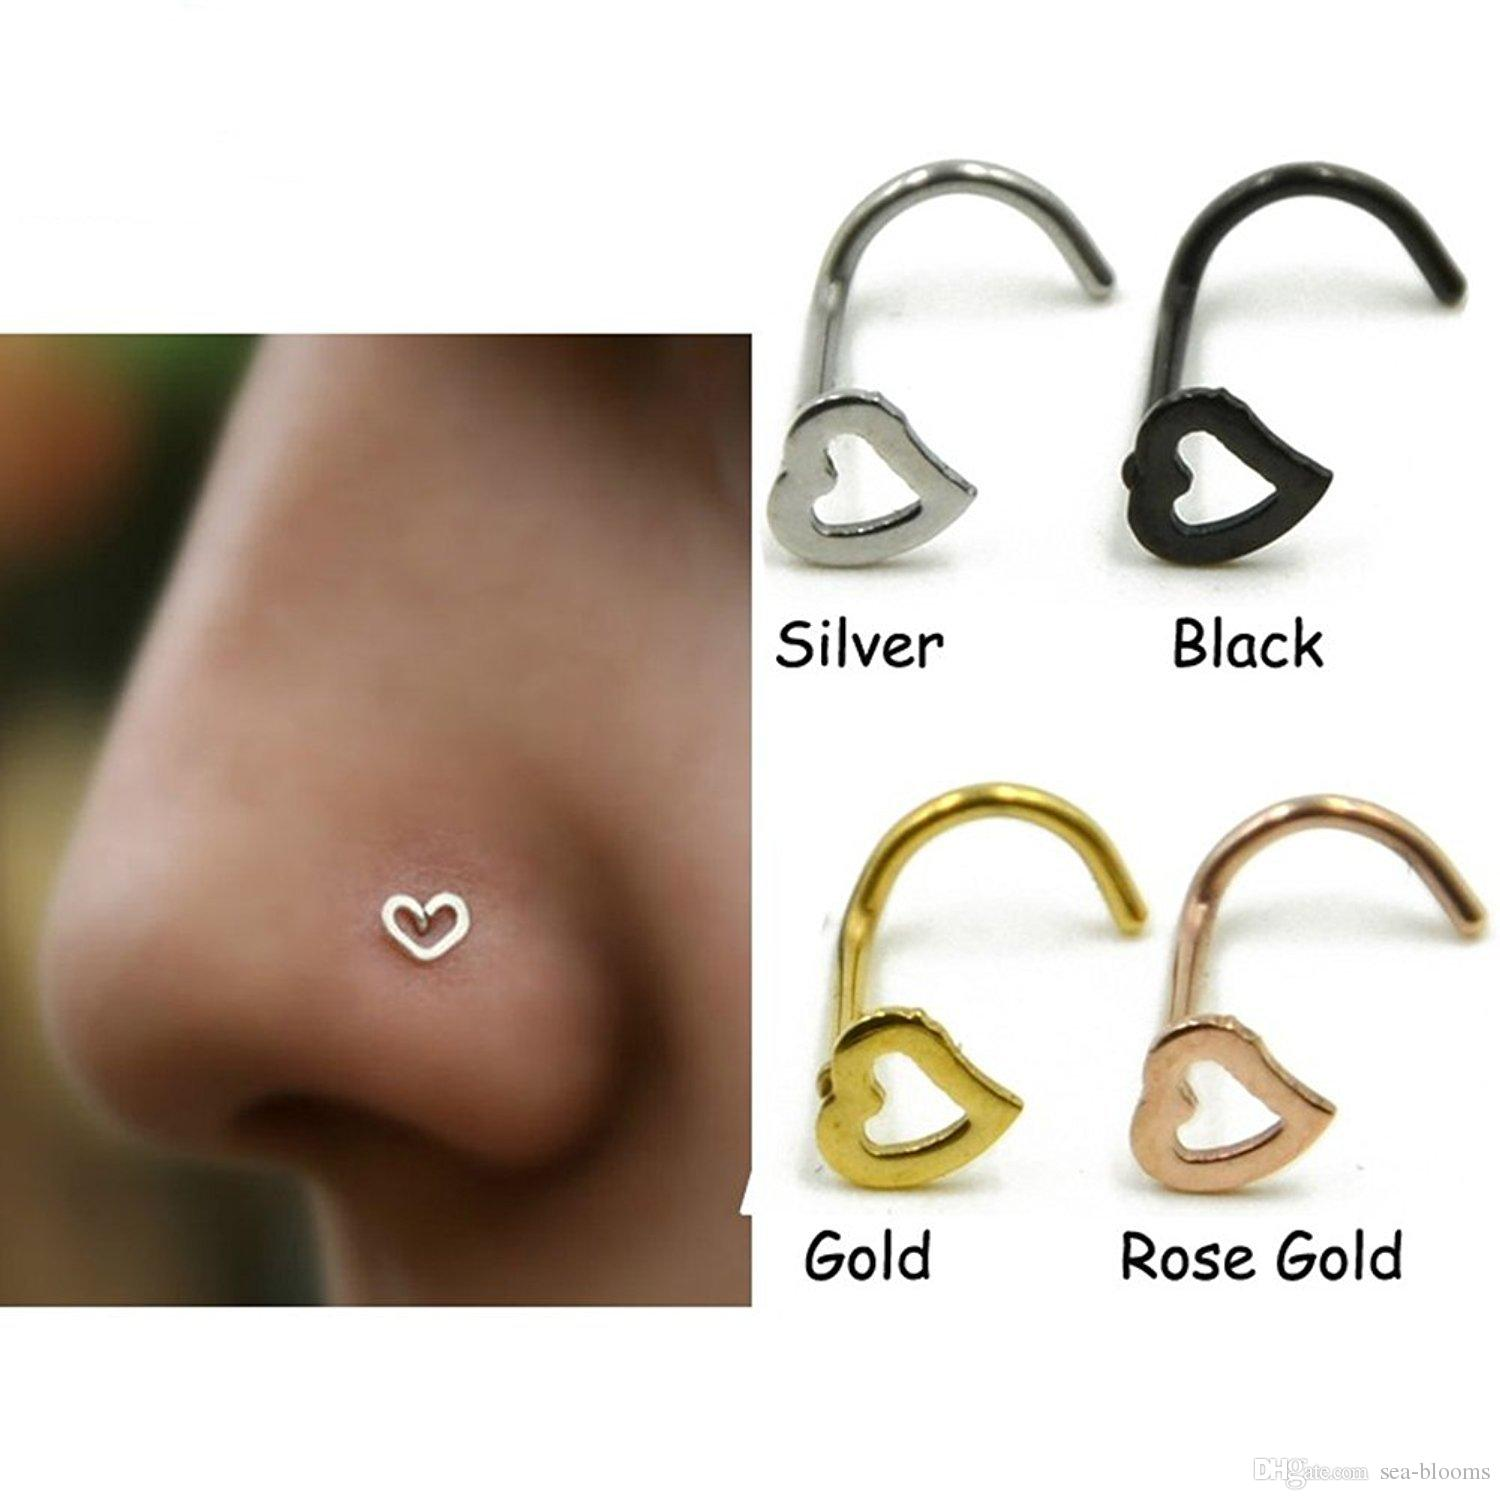 5 Style Heart Nose Studs Piercing Ornament Nose Ring Screw Stainless Steel Curved Nose Nails Support Fba Drop Shipping G615s